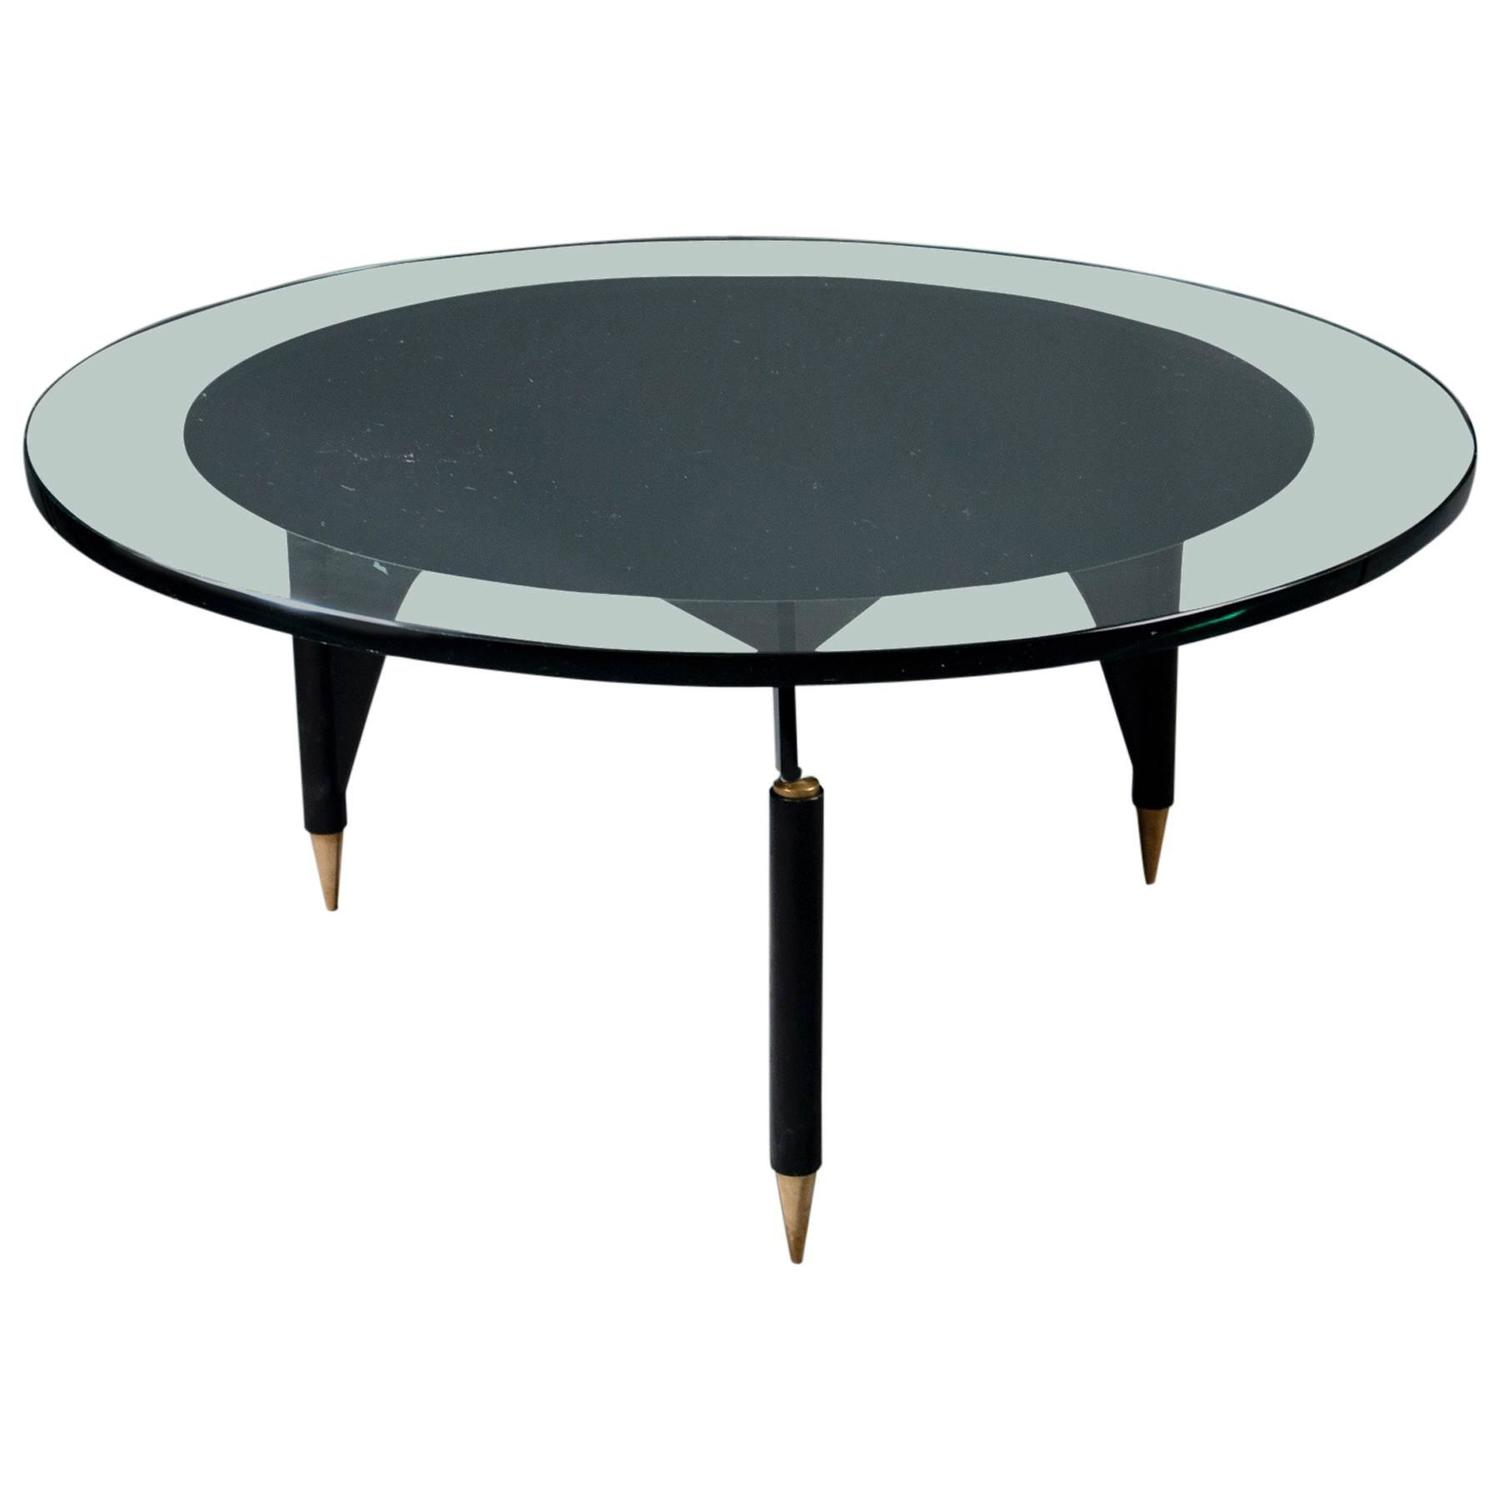 coffee table by max ingrand fontana arte italy milan circa 1960 for sale at 1stdibs. Black Bedroom Furniture Sets. Home Design Ideas